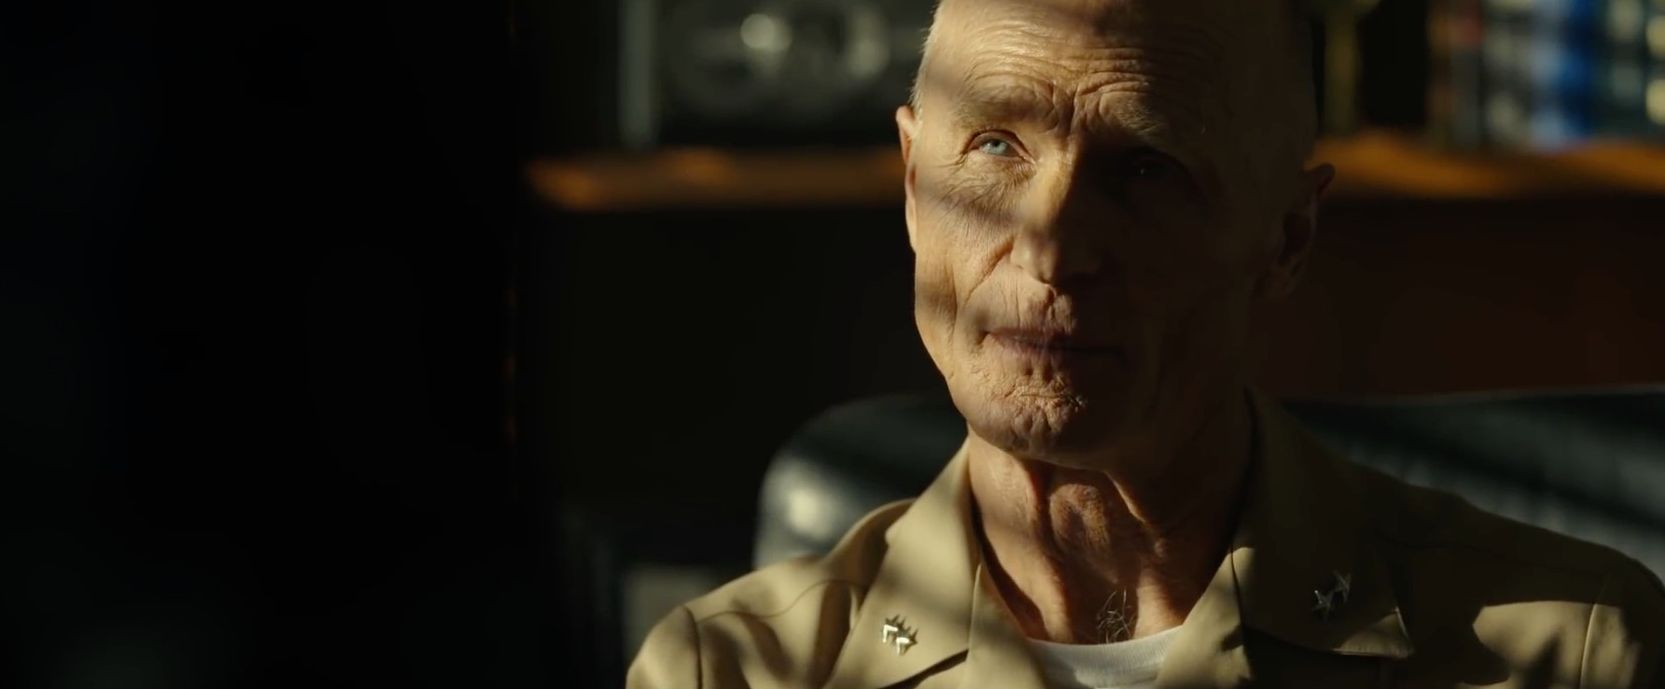 Ed Harris 'Top Gun: Maverick' Courtesy Paramount